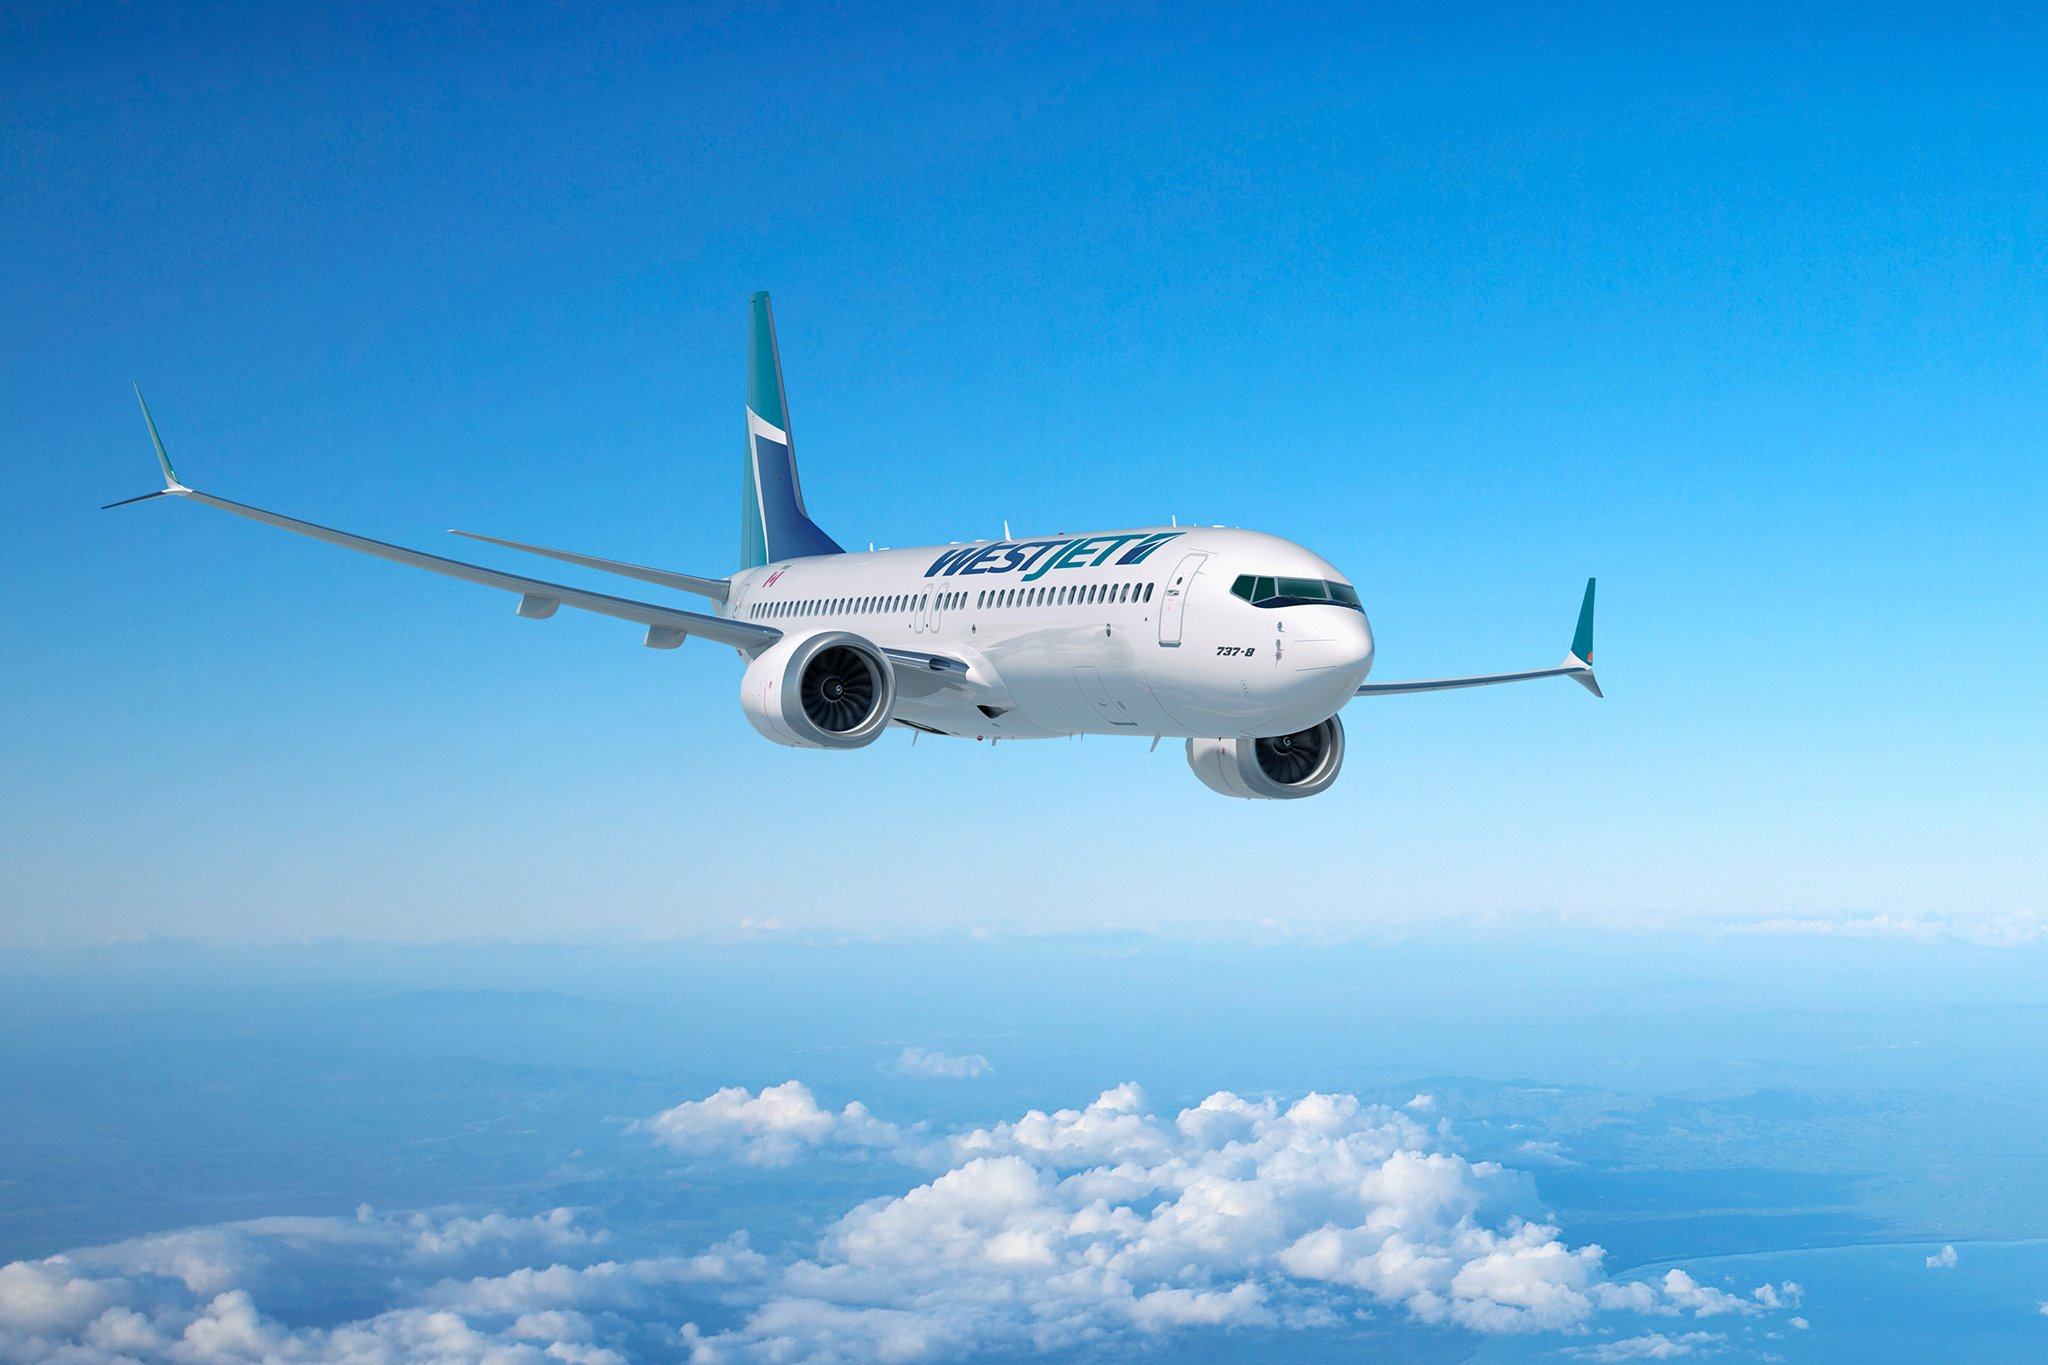 Sep 10, · A few months ago we announced we would soon start WestJet flights to London, via Gatwick Airport. Now that we've announced our full flight schedule between Canada and London, it's time to let you know what to expect when travelling with us across the pond.